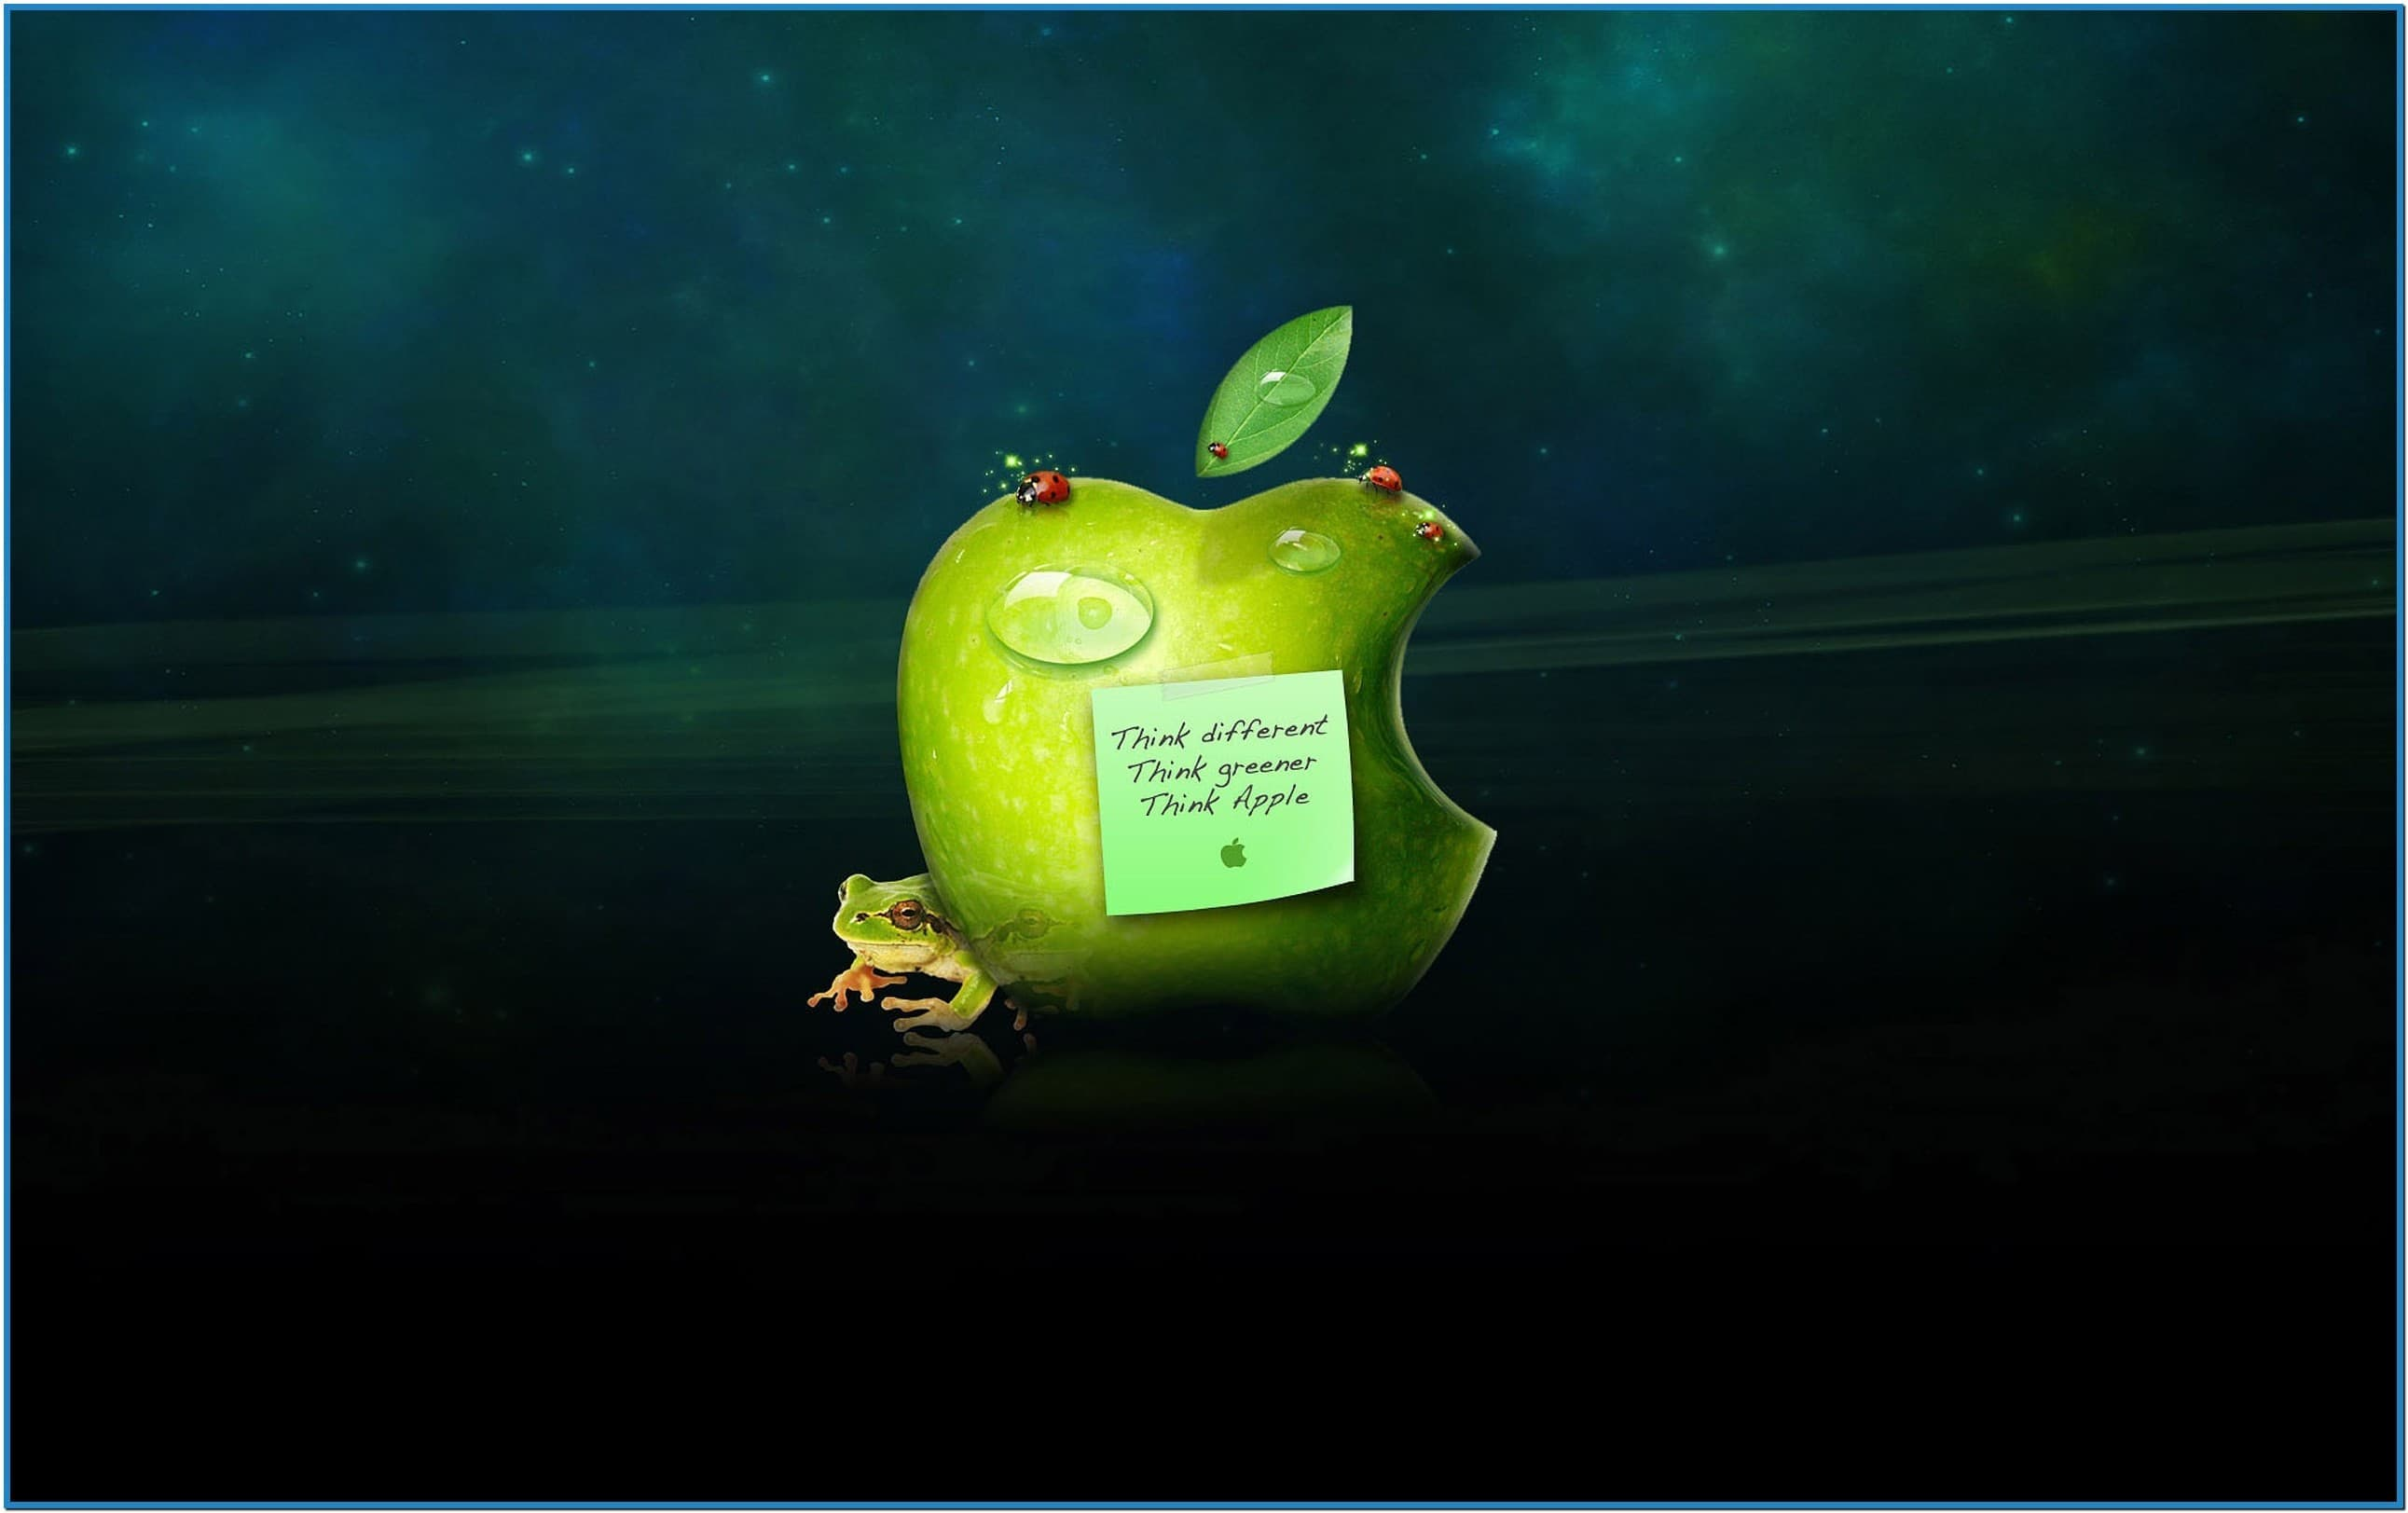 Free screensavers and wallpaper humor wallpapersafari - Funniest screensavers ...